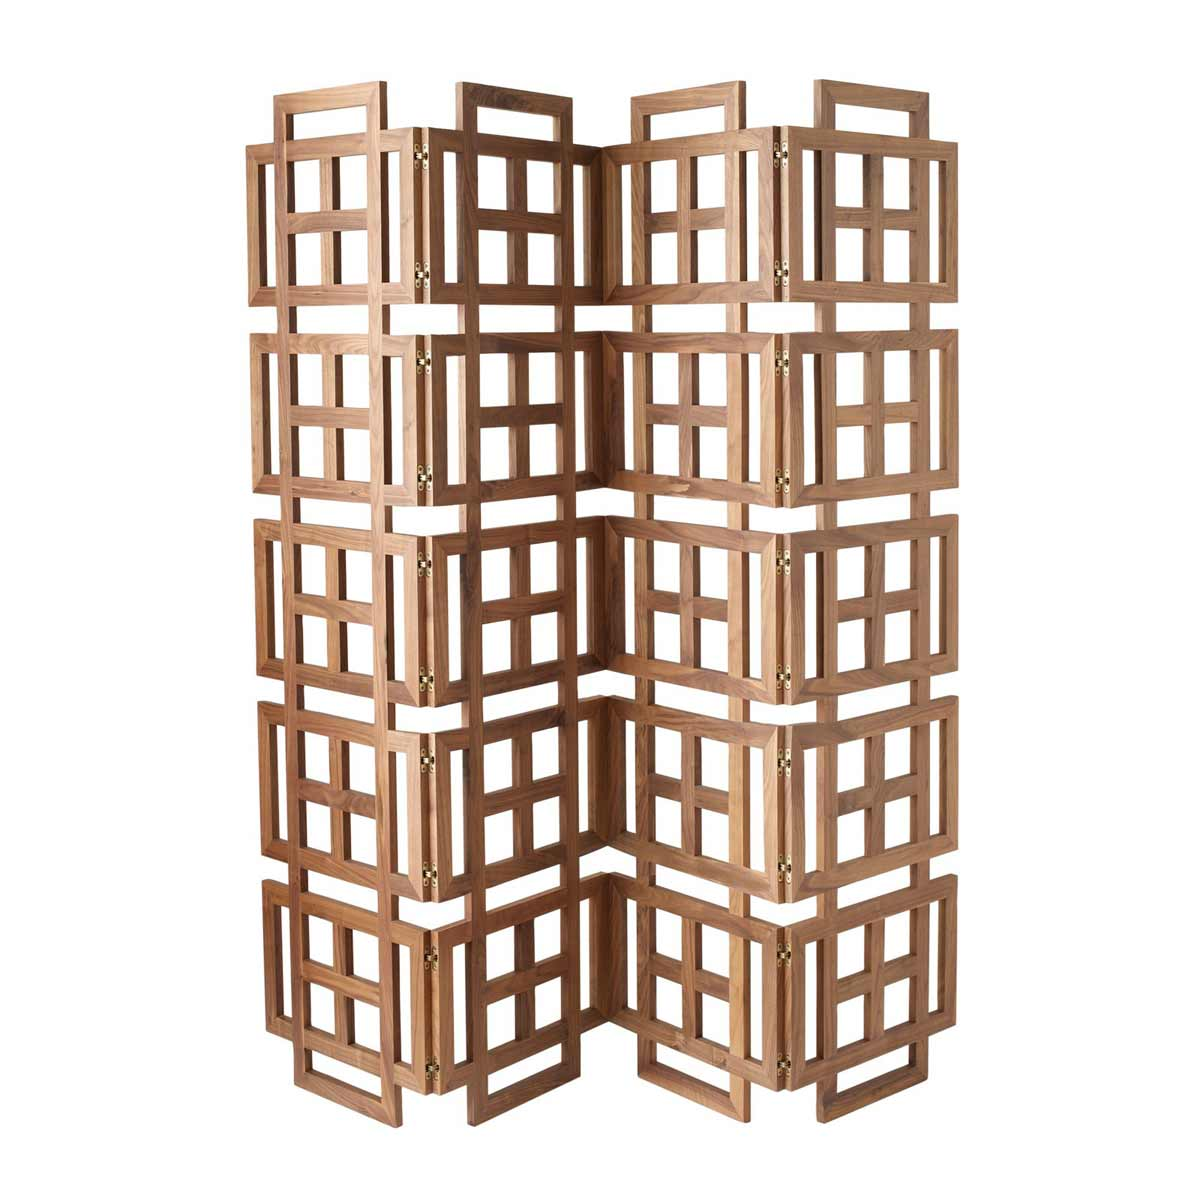 Domestic Room Dividers | Feel The Home